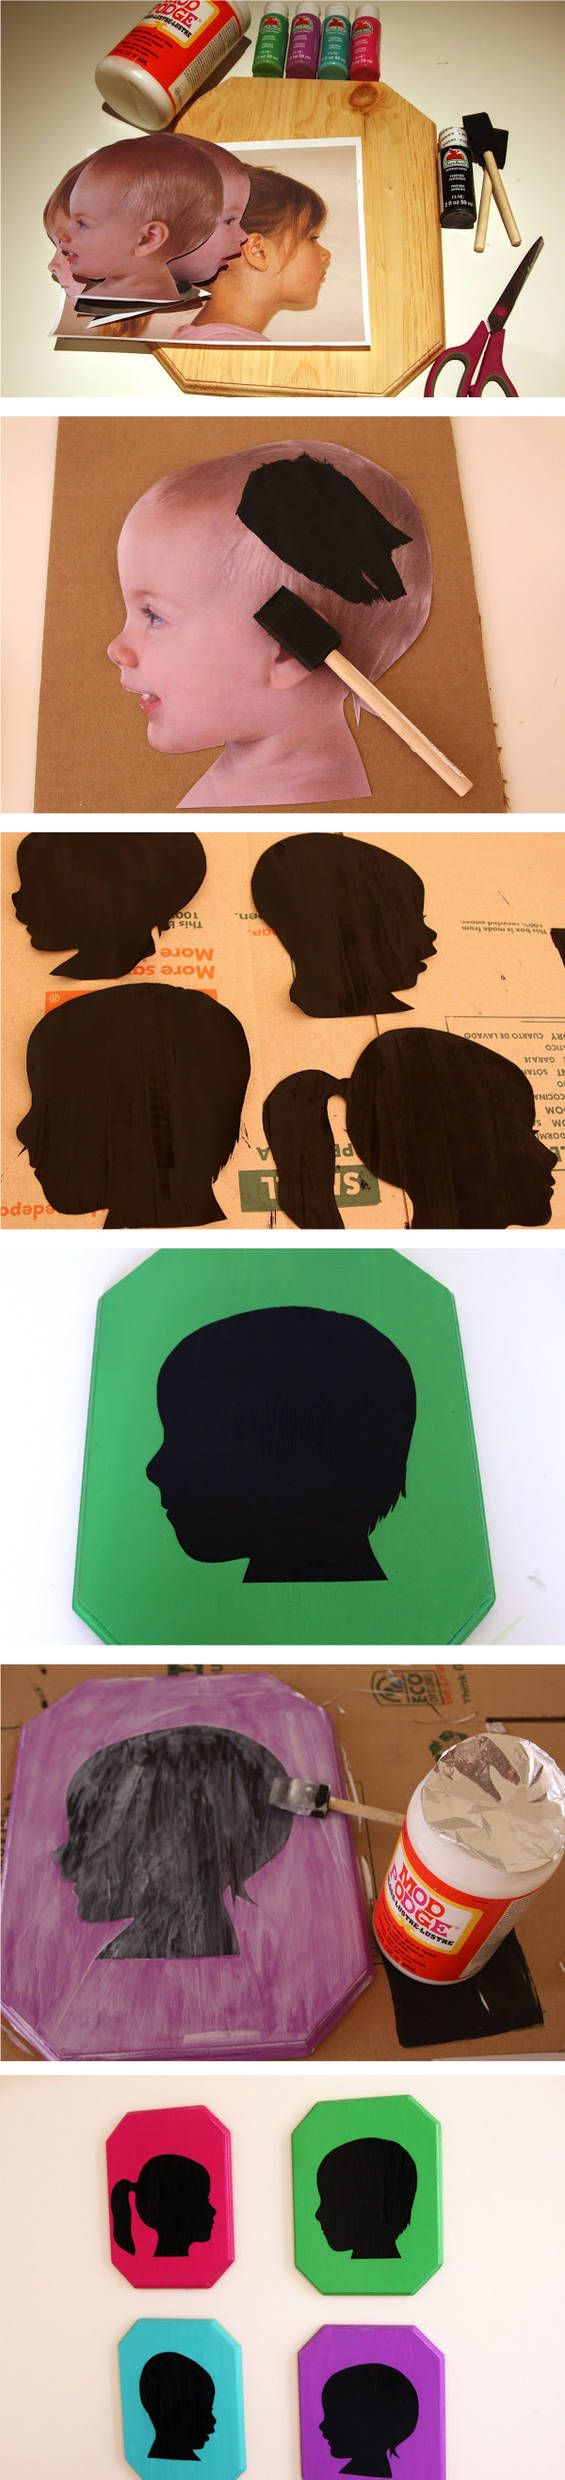 Great Idea!  Easy way to make silhouettes of the grandkids